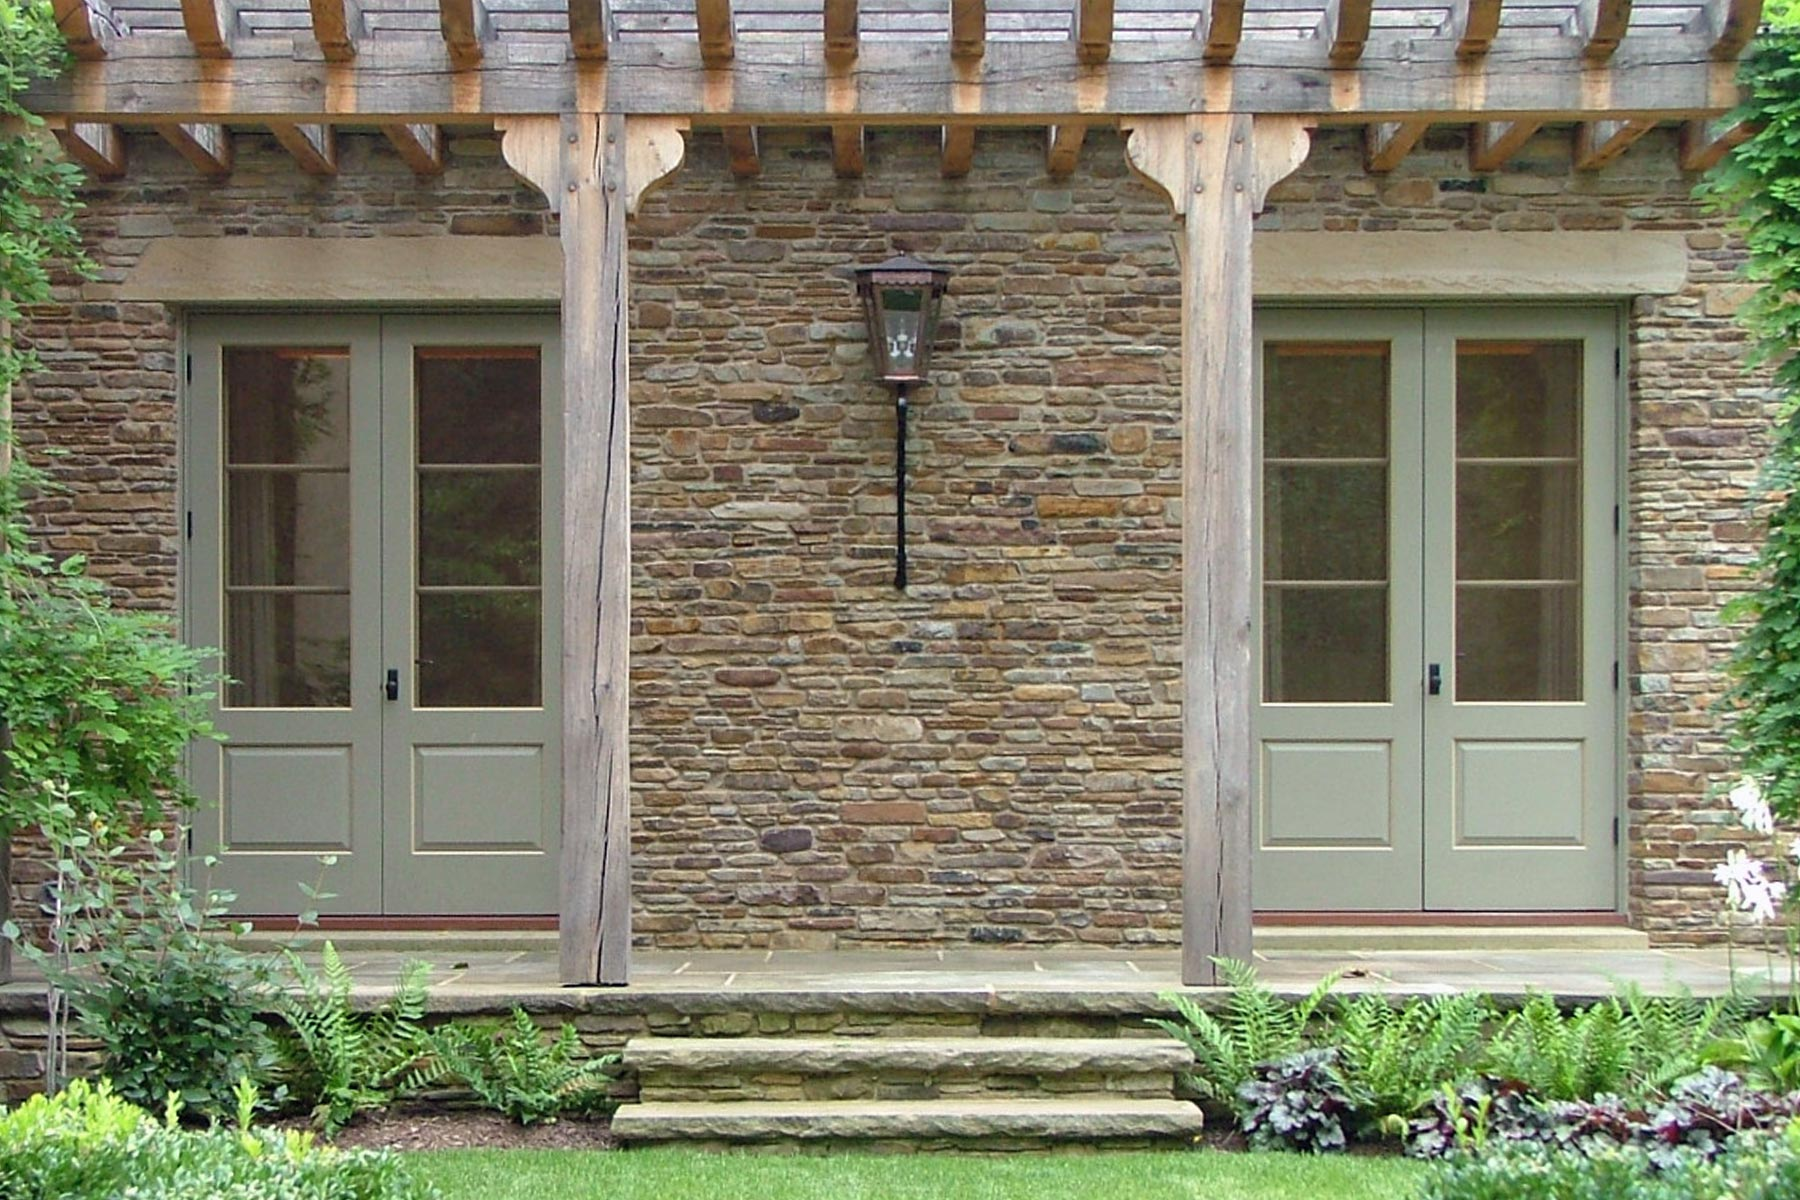 Private-Residence-Cleveland-OH-6